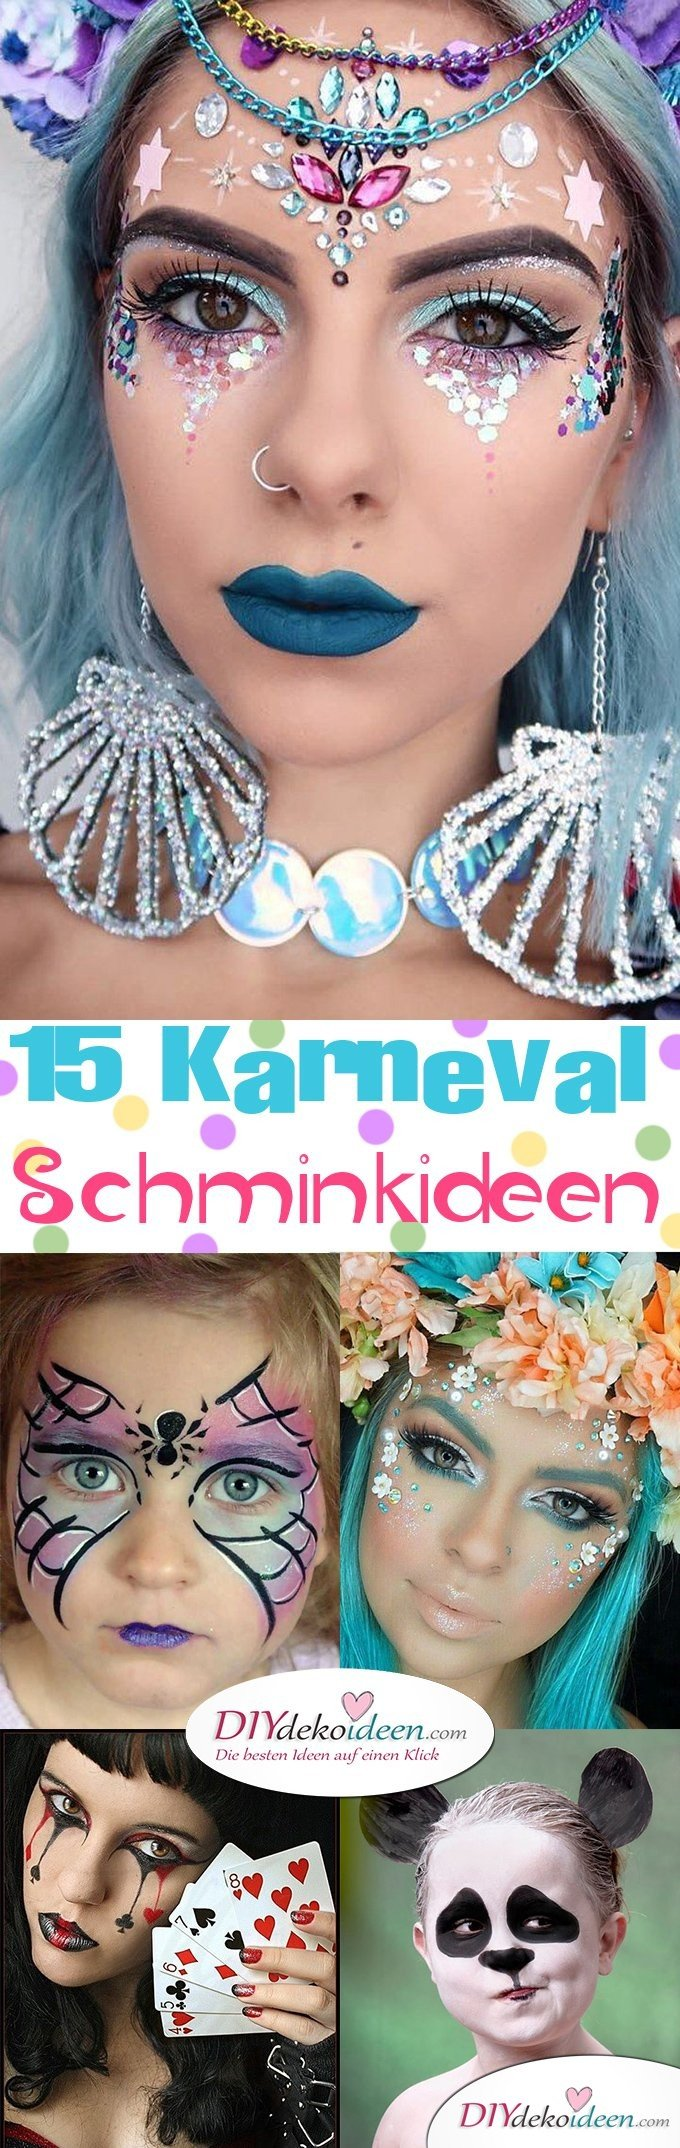 15+ Karneval Schminkideen, Fee Make up, Karneval, Schminktipps, Fasching Schminken, Make up Fasching, Karneval Kostüm Ideen,